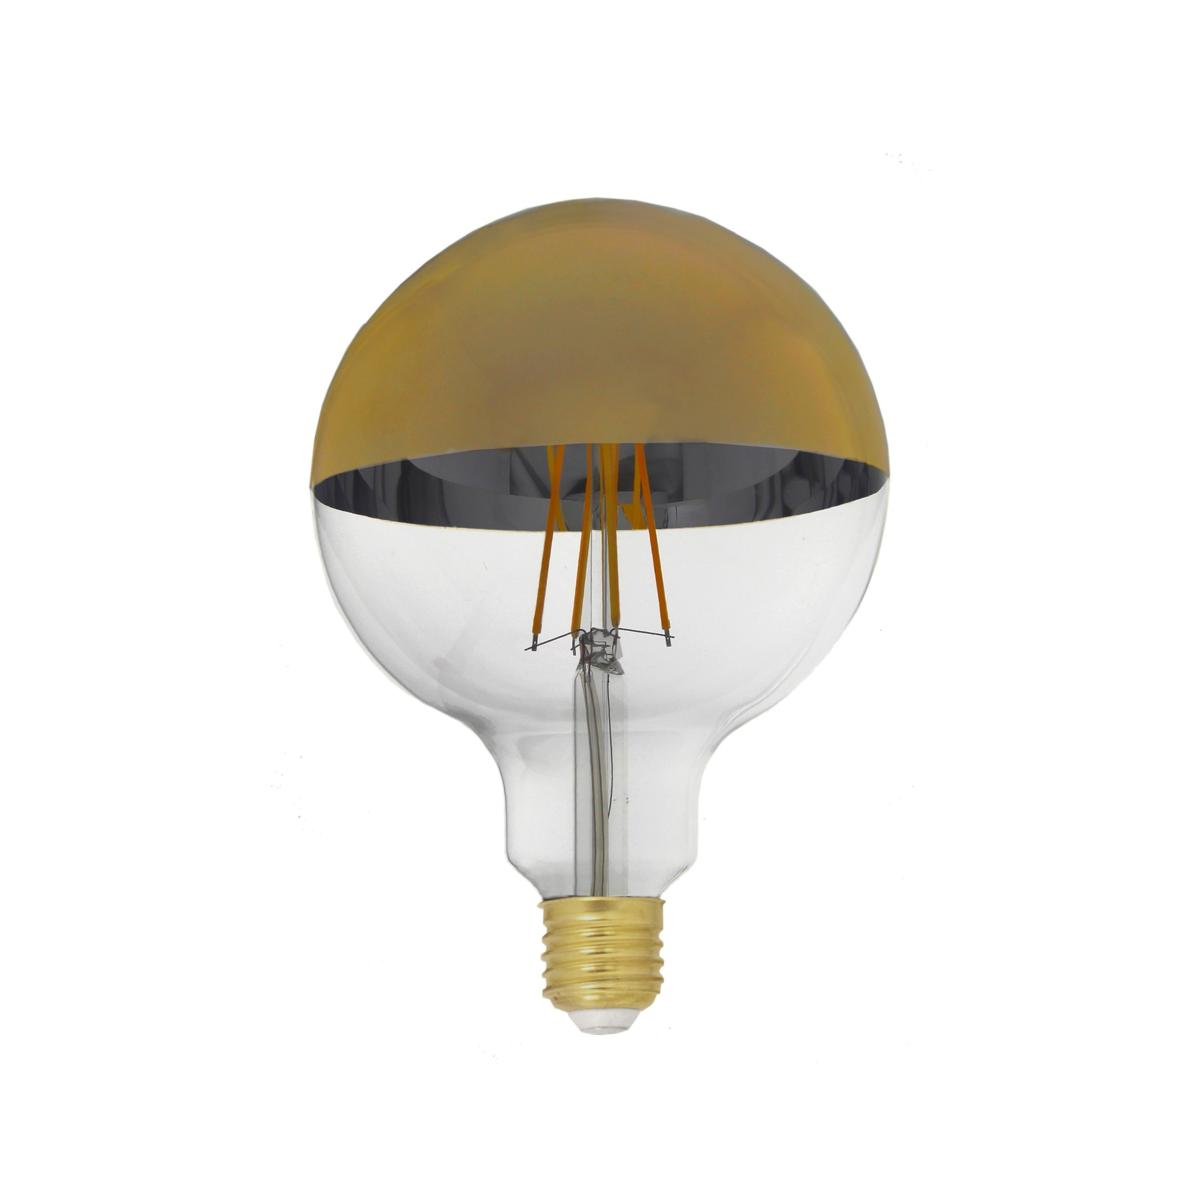 Ampoule E27 Dimmable Ampoule Led E27 Filament Dimmable 8w G95 Globe Reflect Or